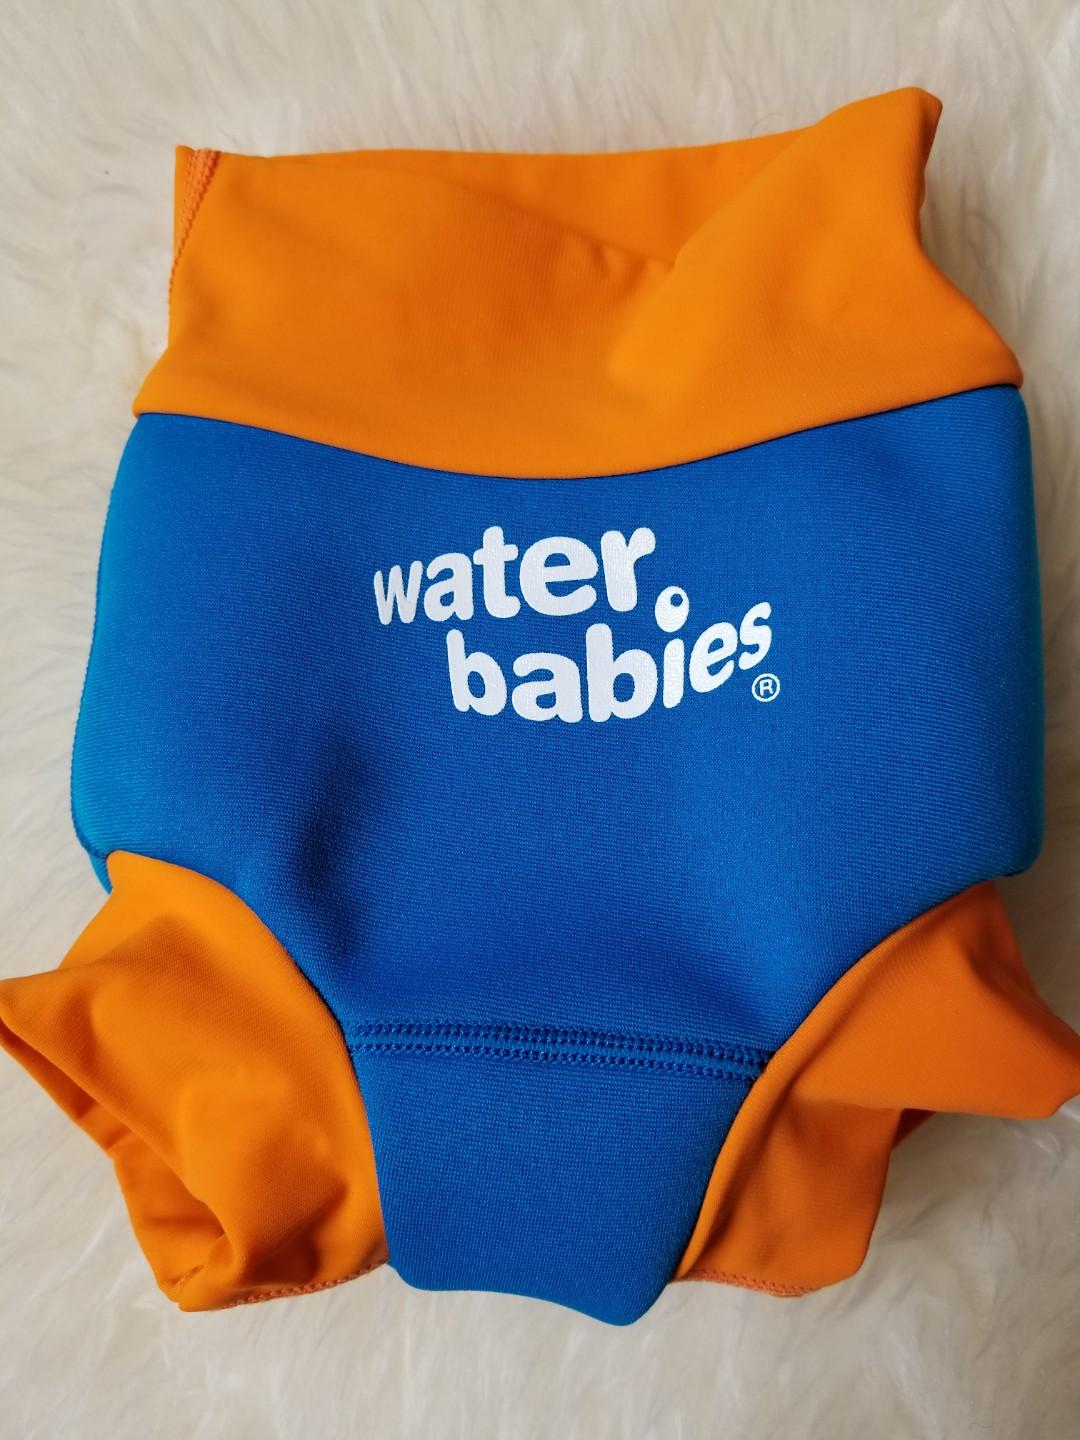 Water babies new happy nappy swim diaper size large. Fits 20 to 30lb. New condition. Pick up Gerrard and Main for $14 or Yorkville for $15. Purchased brand new for $28.